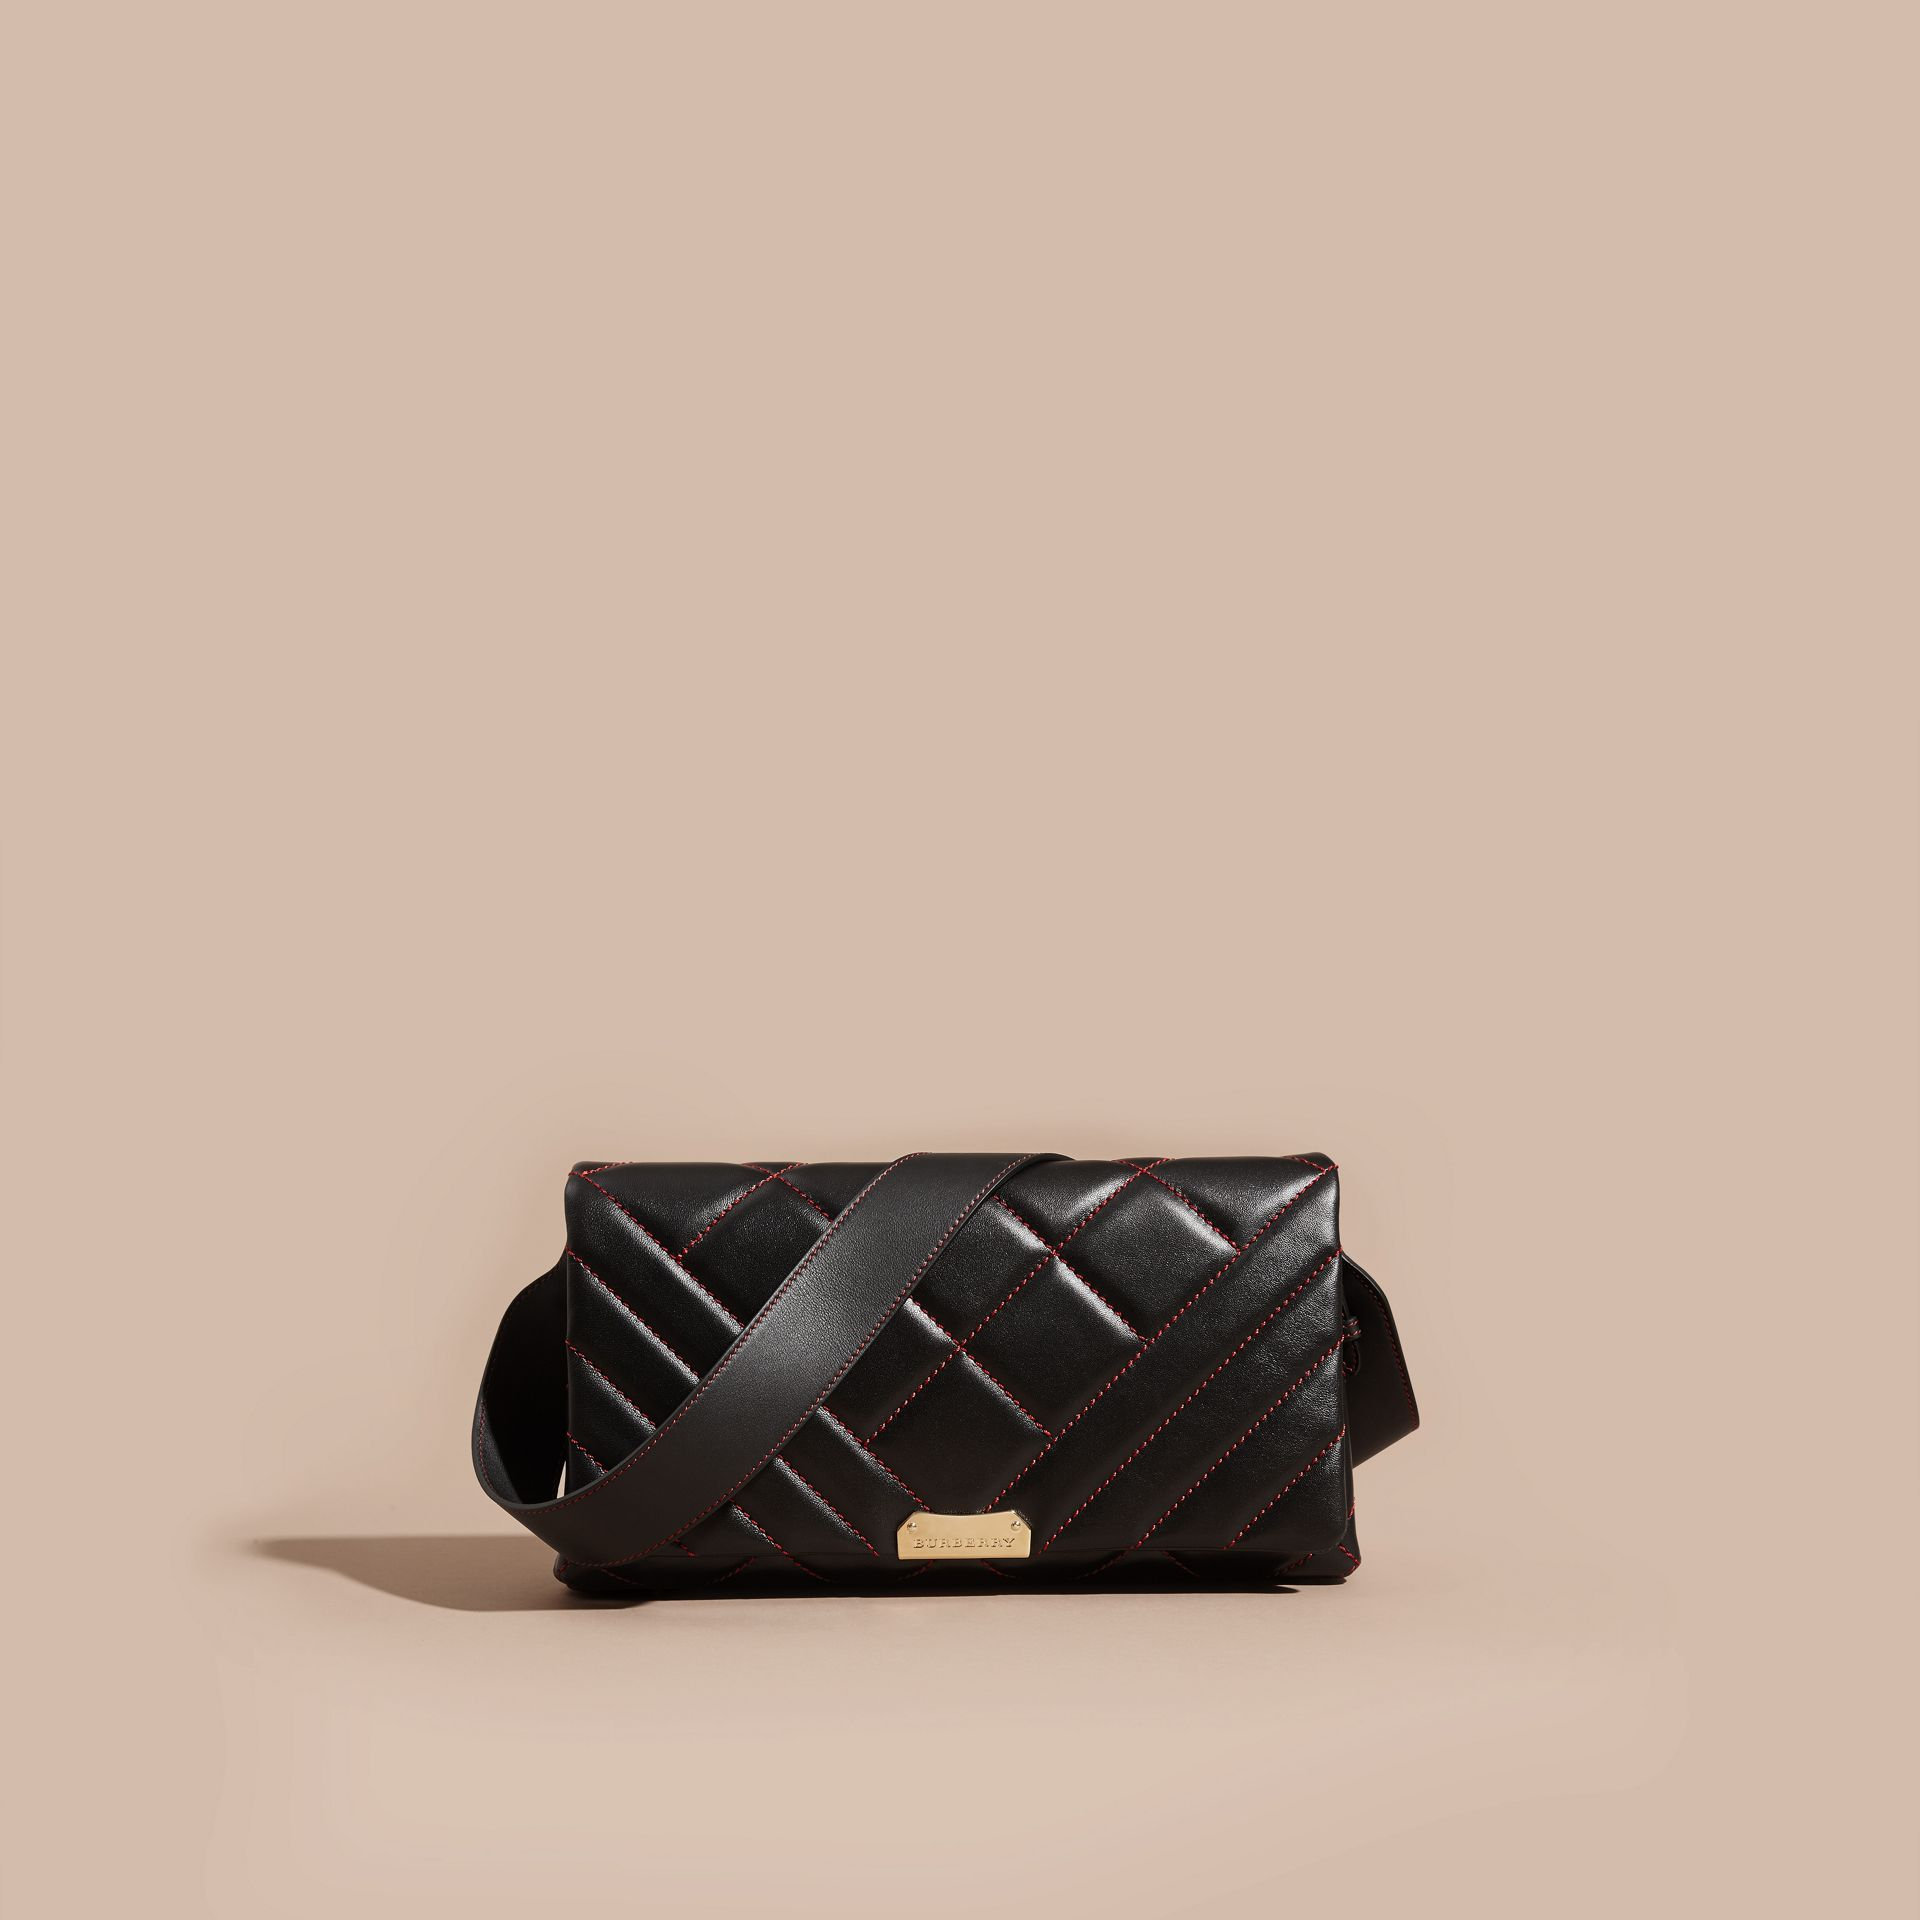 Noir/rouge parade Clutch en cuir matelassé et coton House check - photo de la galerie 8